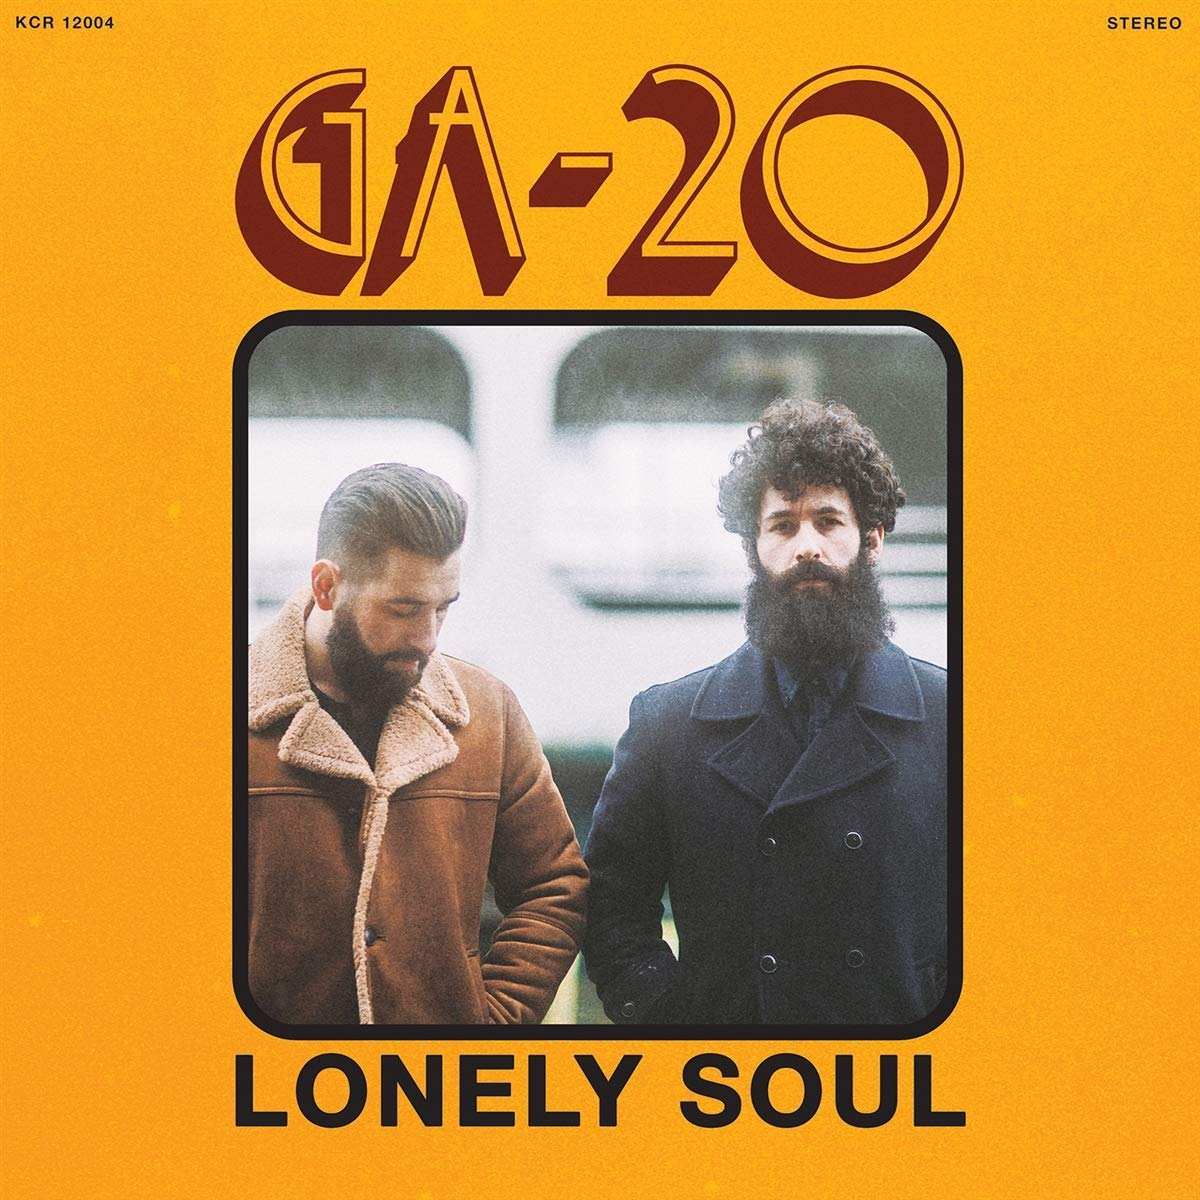 GA-20 - Lonely Soul [LP] (Red Colored Vinyl)